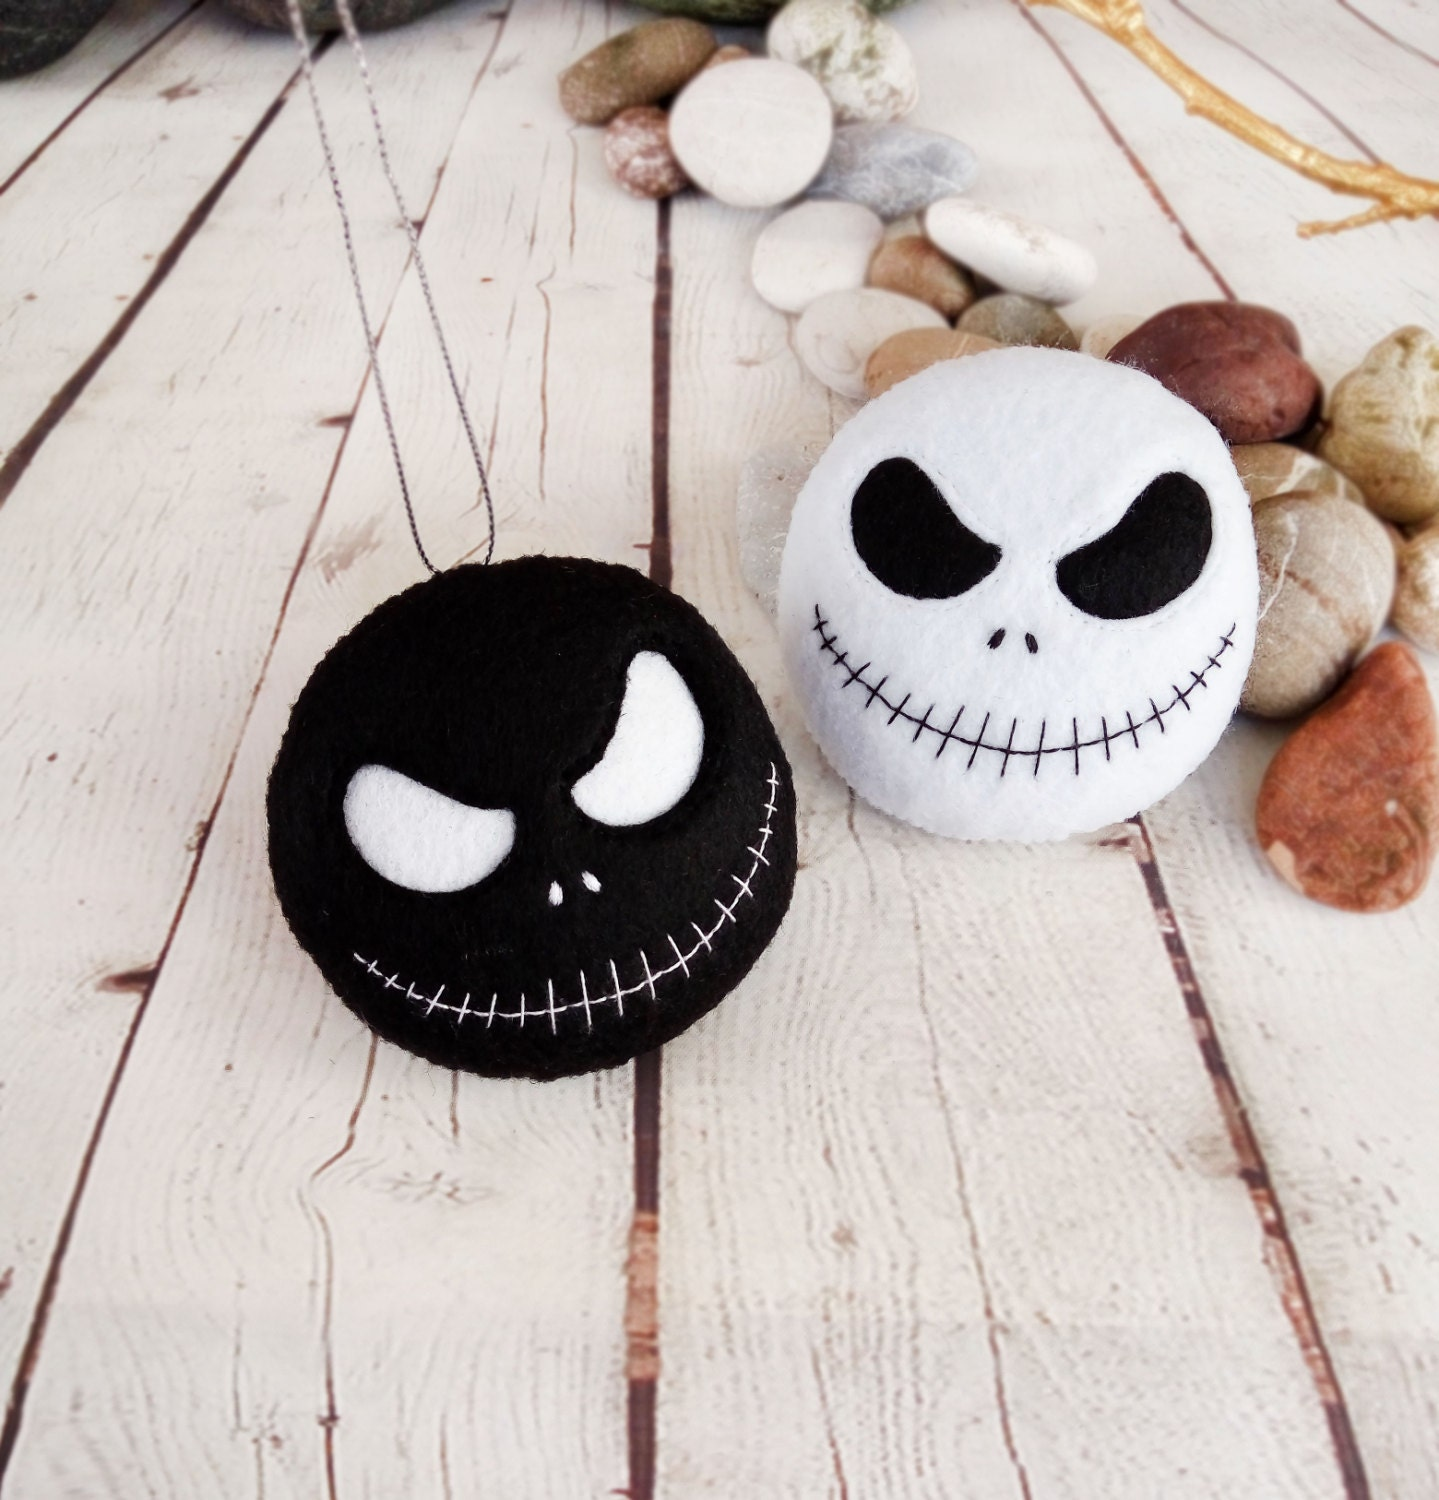 Halloween decoration jack skellington spooky felt toy - Jack skellington decorations halloween ...